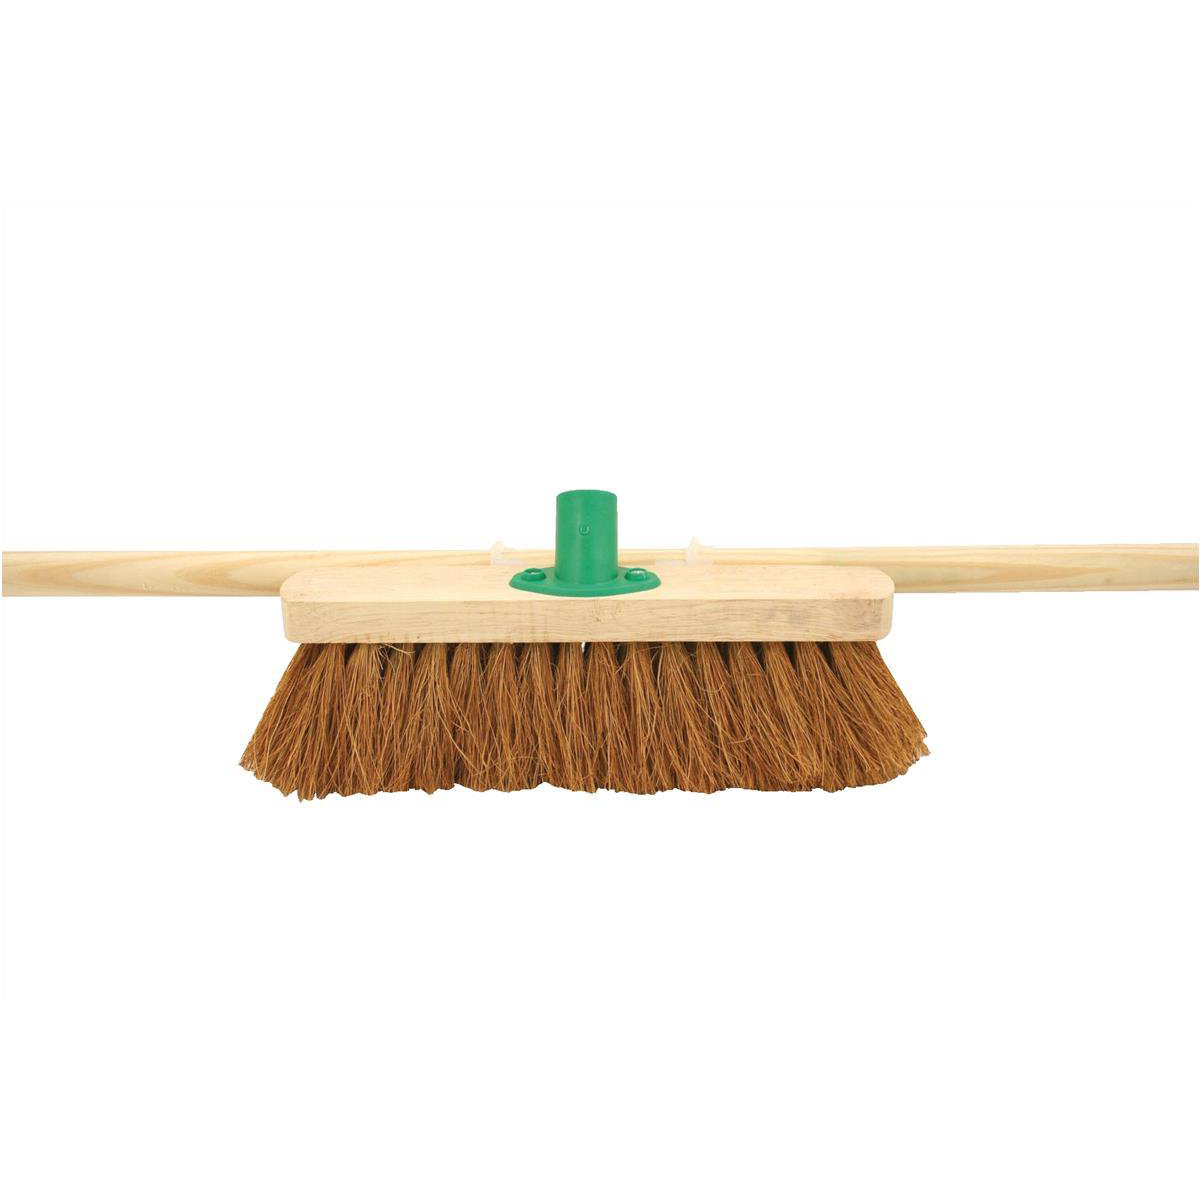 Brooms Bentley 12inch Soft Coco Broom Head with Handle & Push fit Plastic Bracket Ref SPC/F01BKT/C4